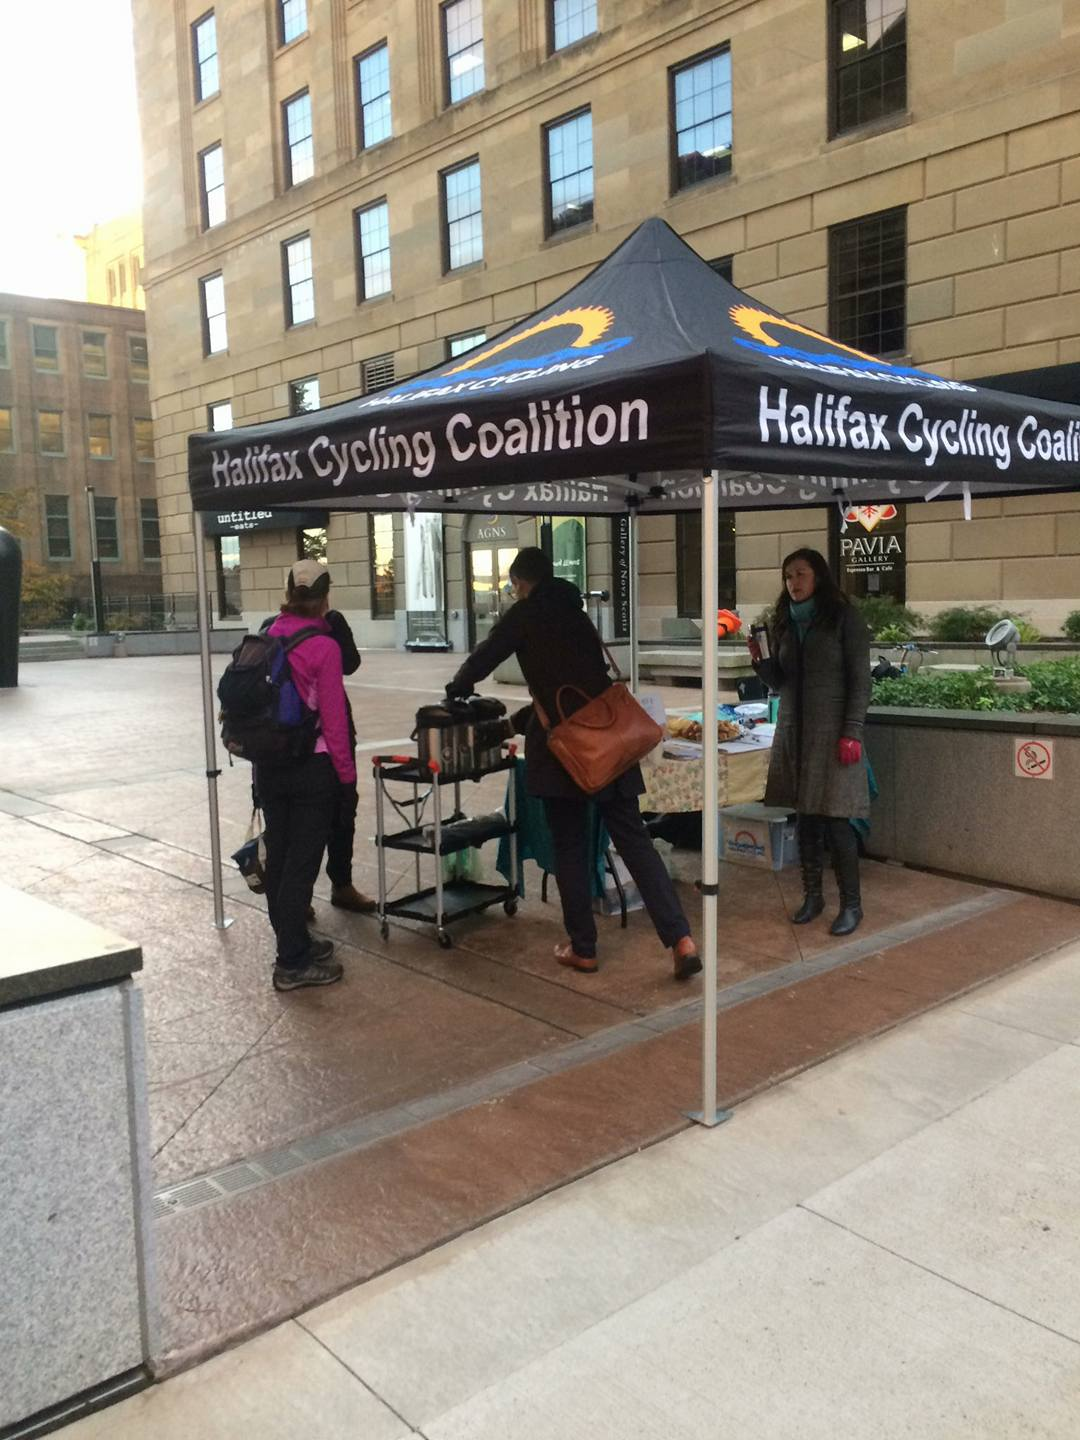 PAVIA regularly donates to local charities and organizations. In this case, the Halifax Cycling Coaltion put on an event to thank local cyclists for leaving their cars at home and taking their bike into work!